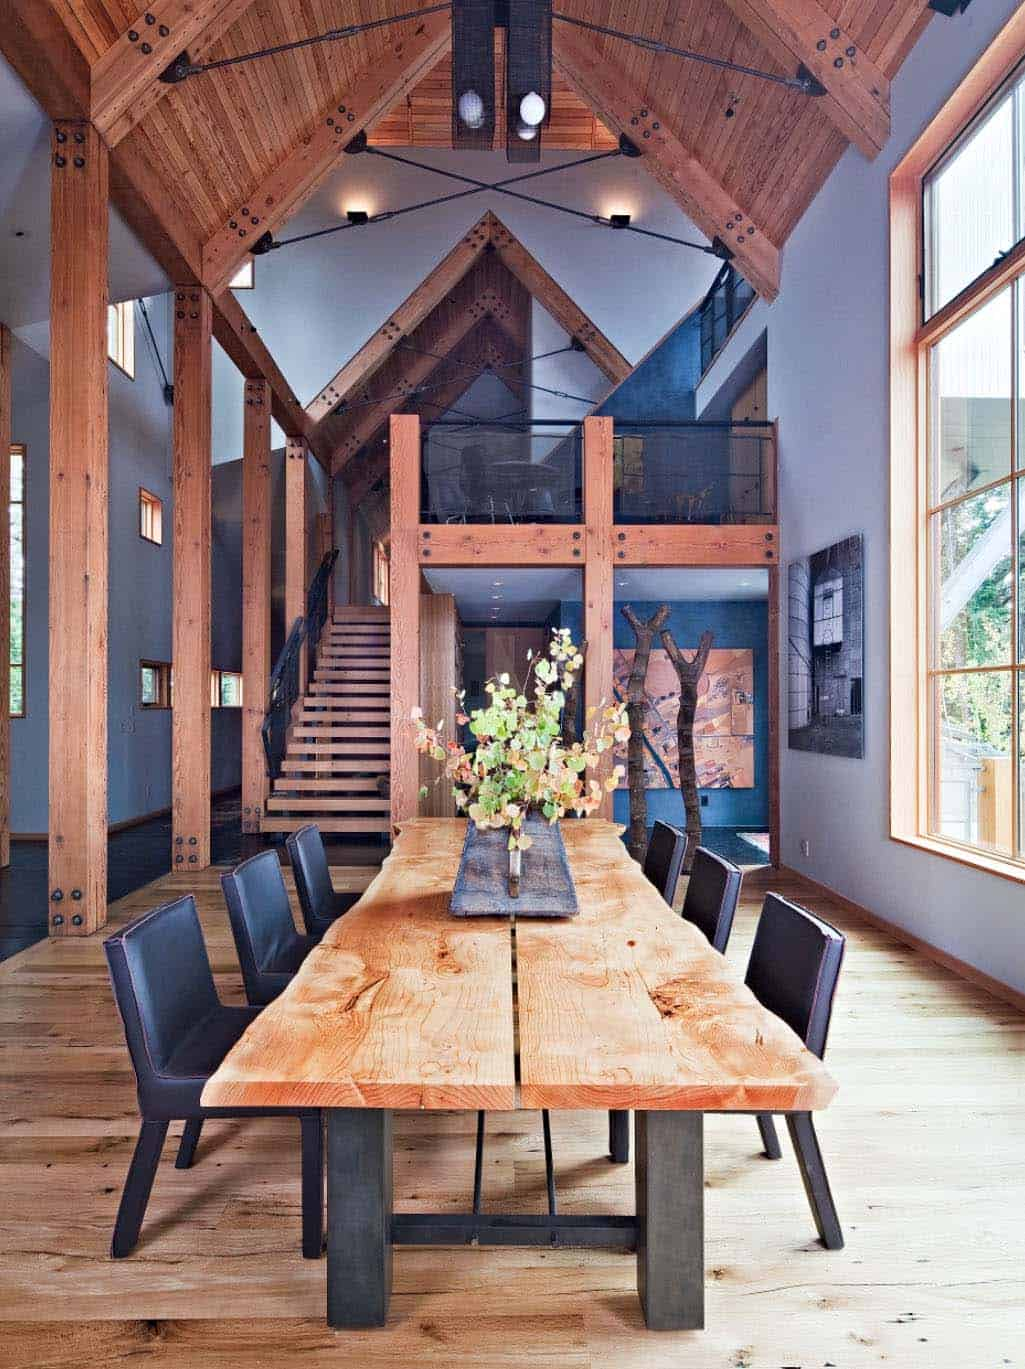 Rustic-Modern-Home-WA Design-22-1 Kindesign